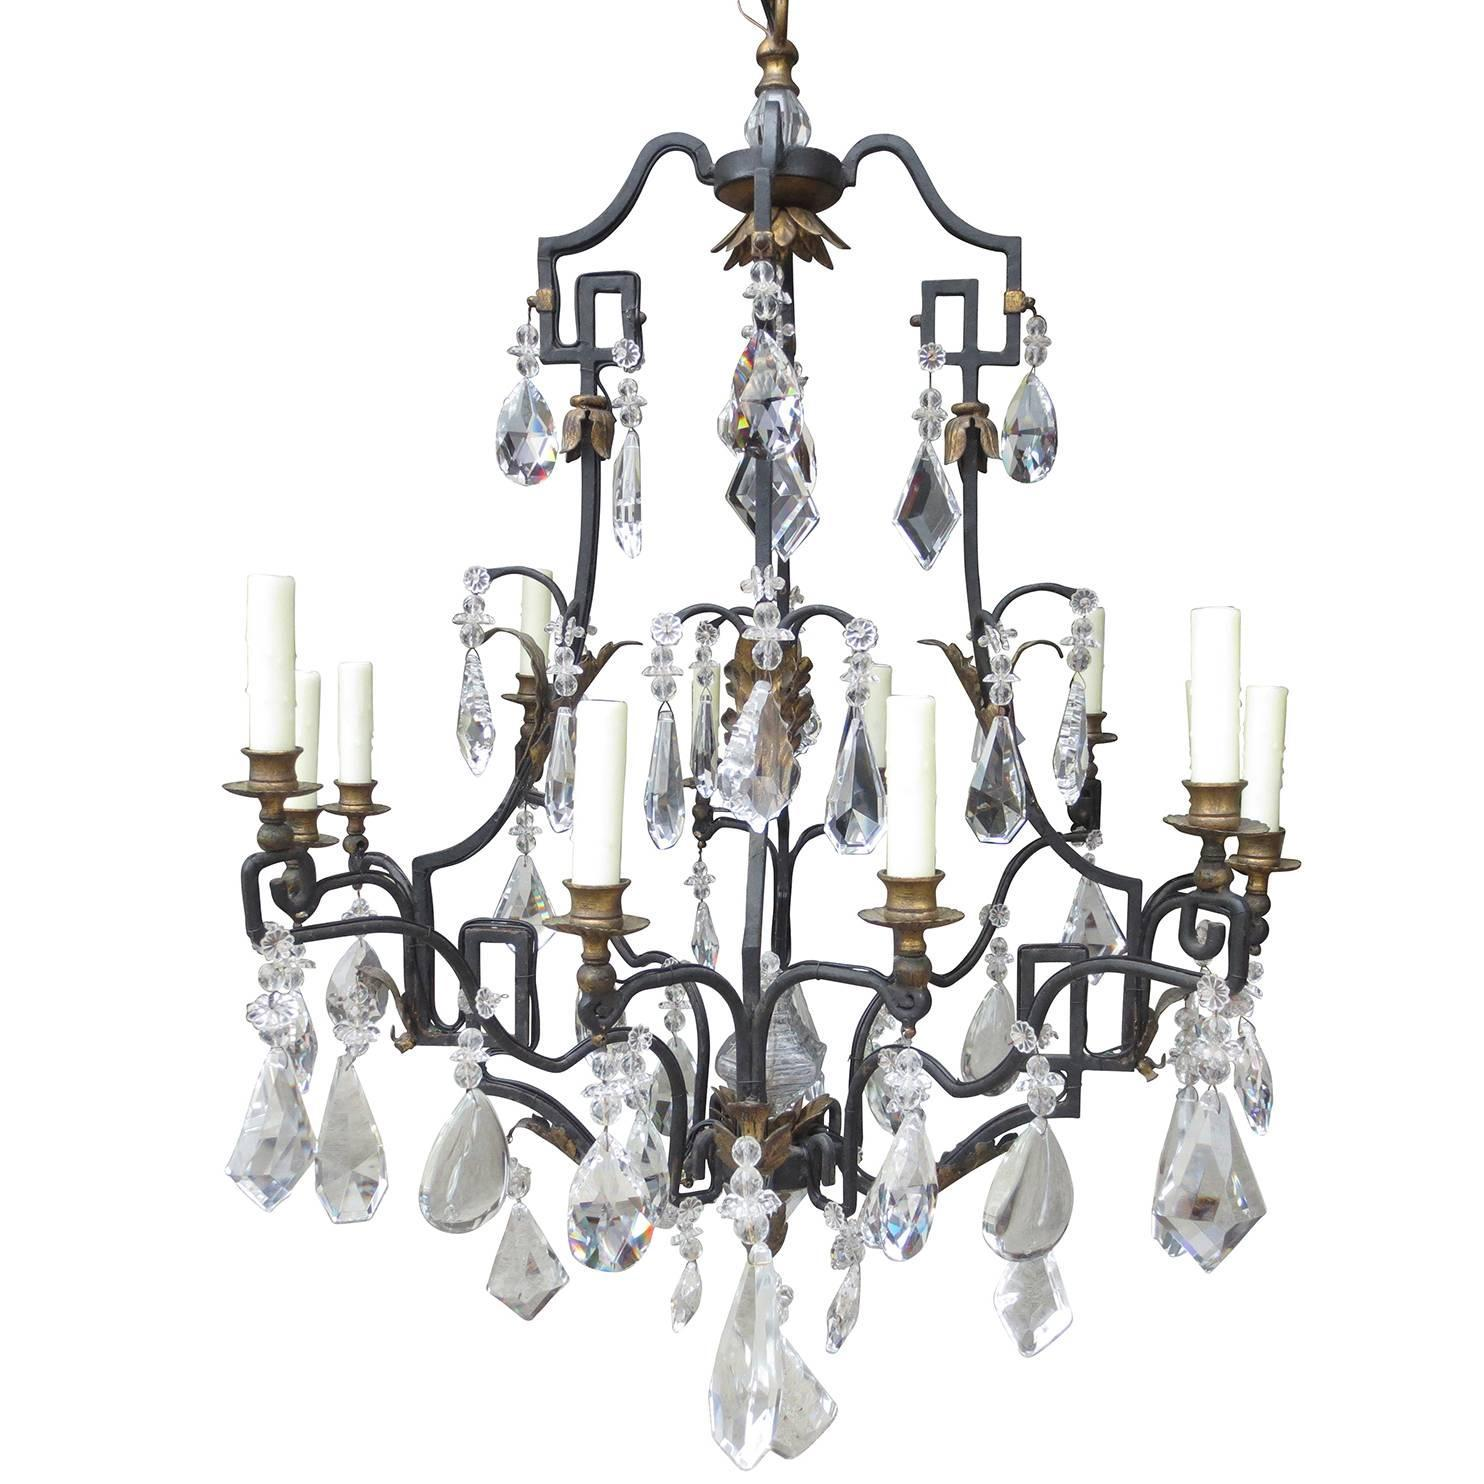 Large 20th Century French and Iron Crystal Chandelier by